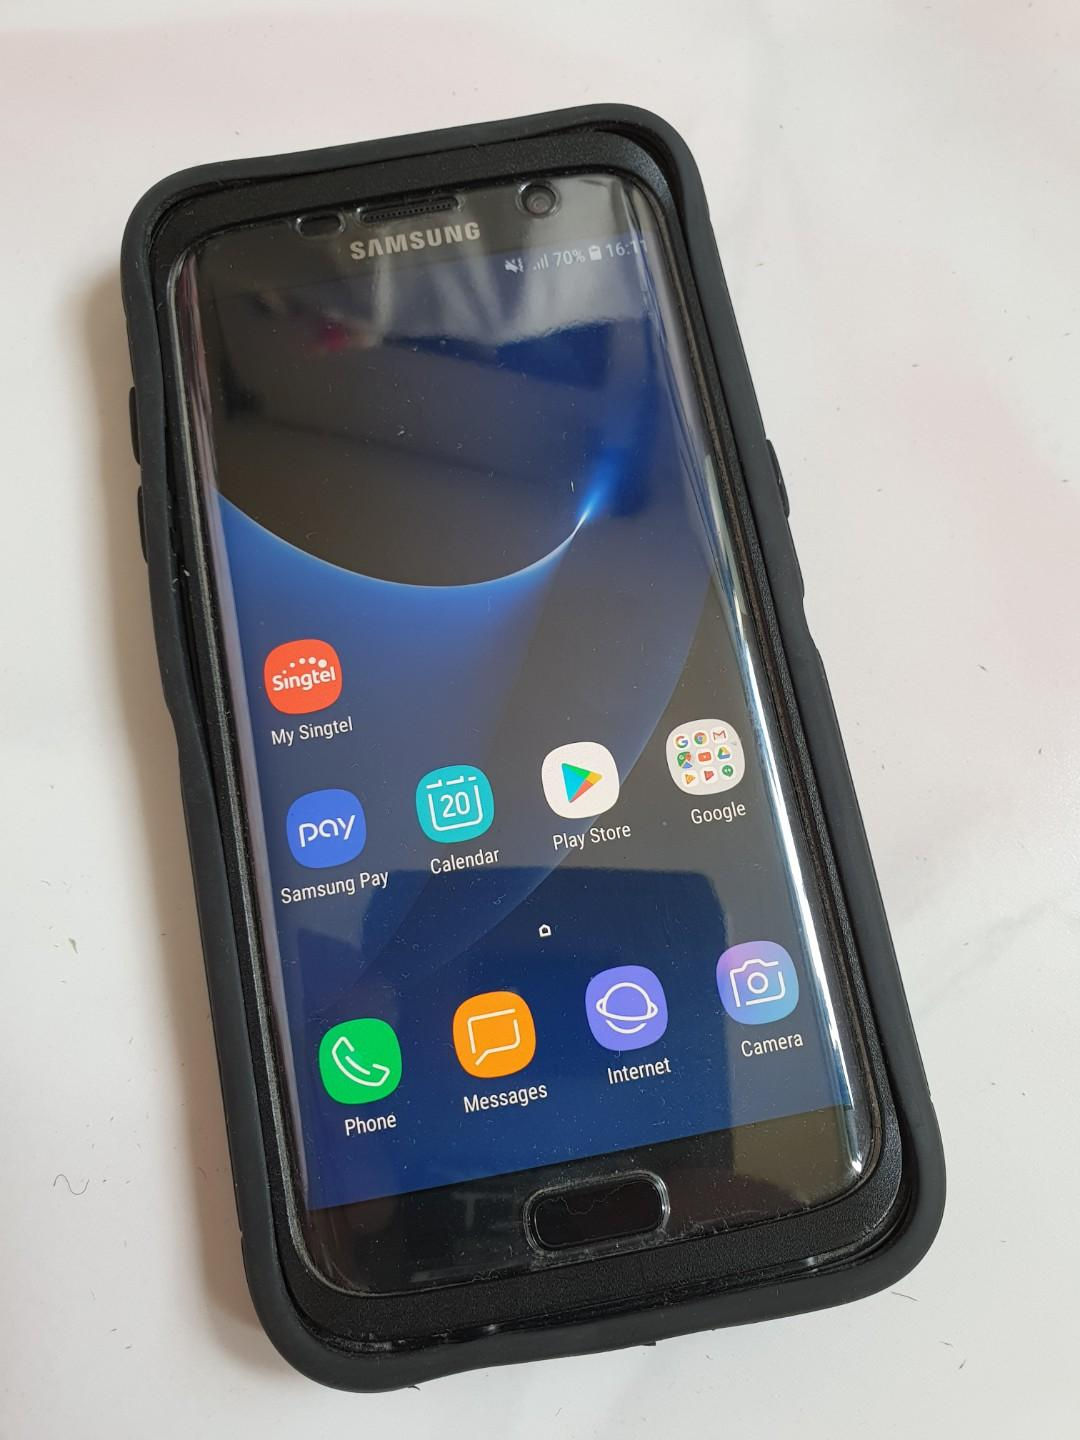 Samsung S7 edge + otterbox defender casing. 100% working, Mobile Phones & Tablets, Android Phones, Samsung on Carousell